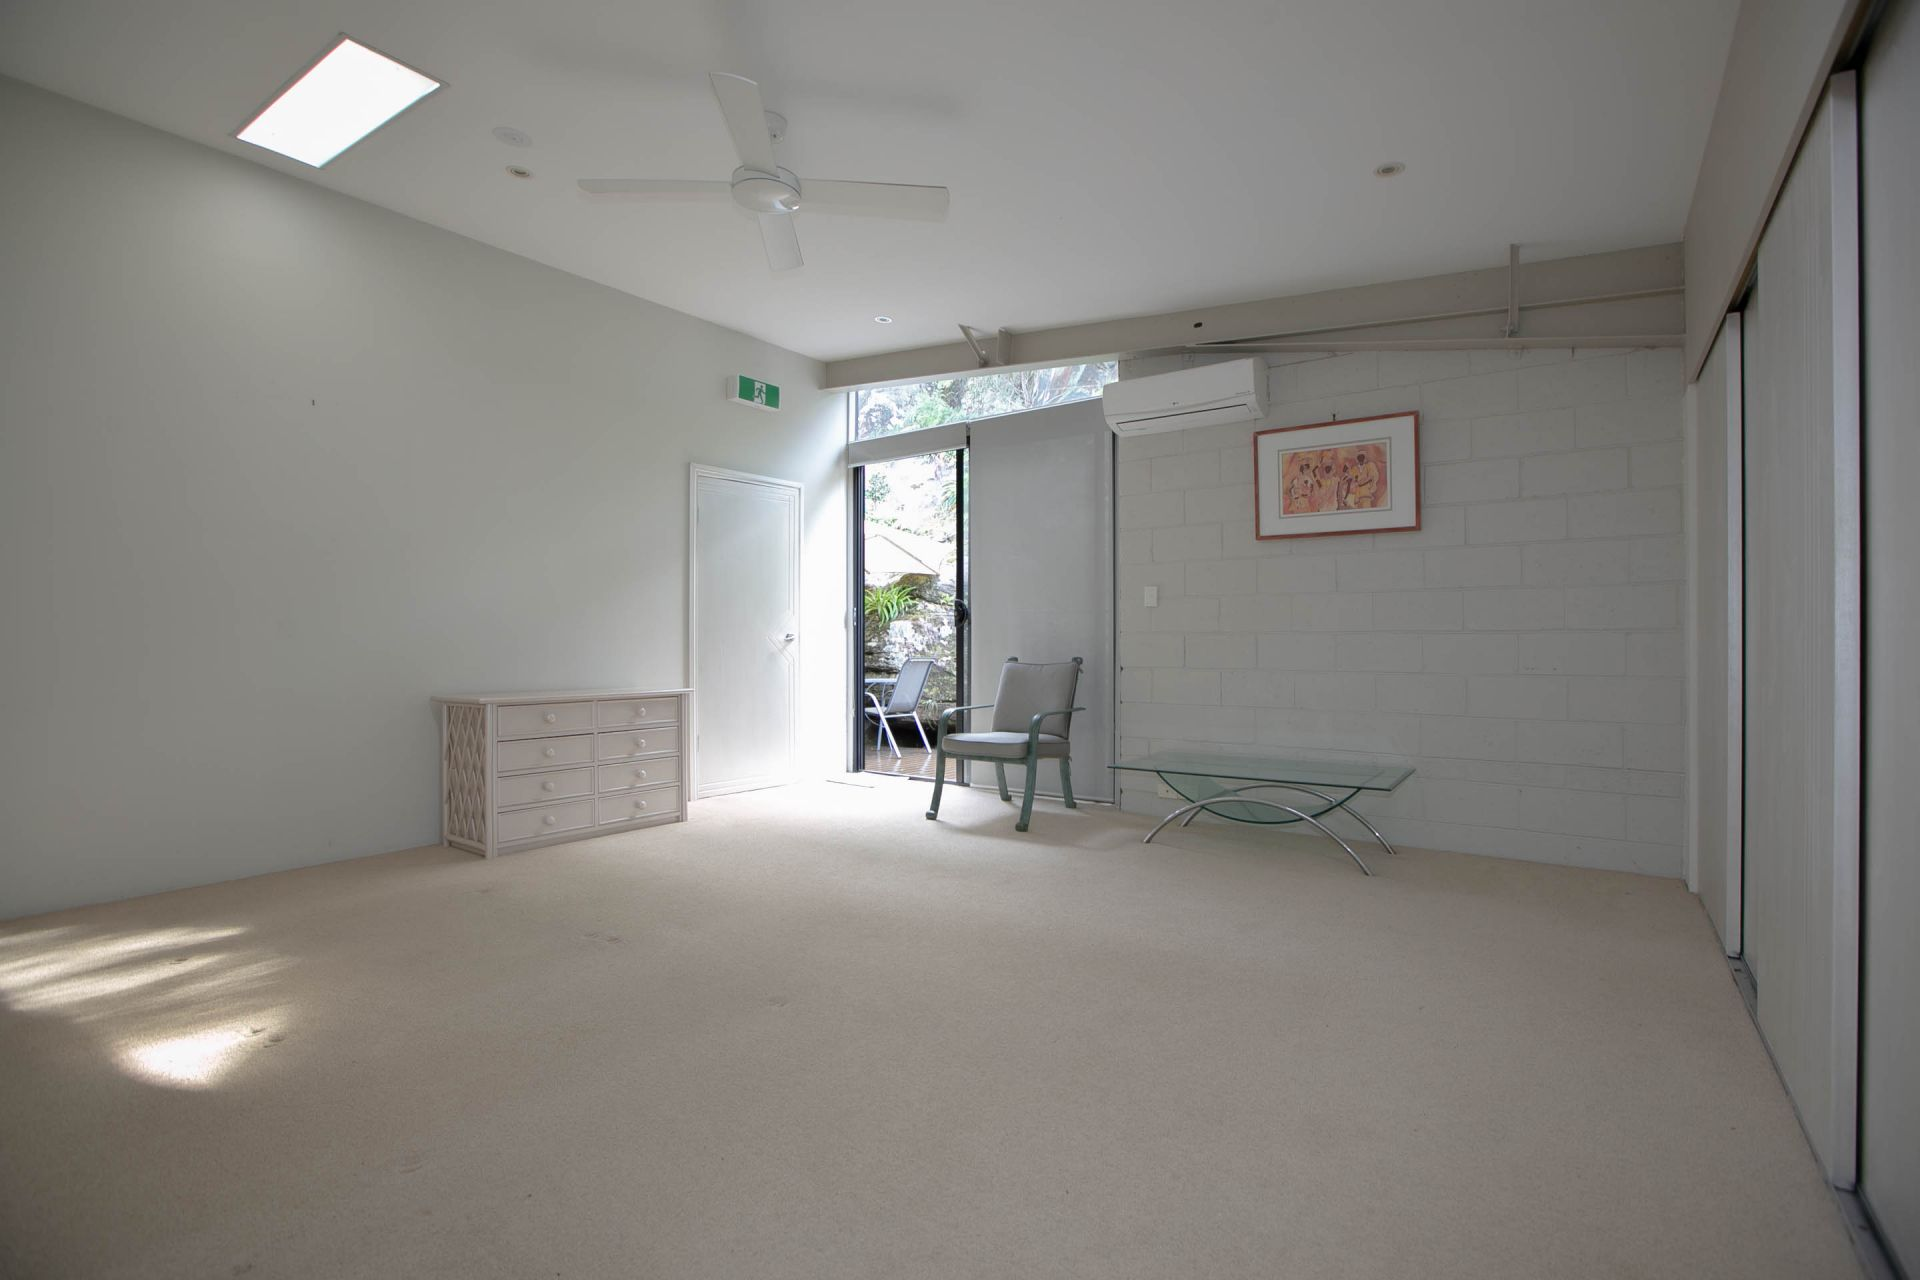 FOR LEASE 250M2 OFFICE HUB OR STUDIO IN THE HEART OF CROMER